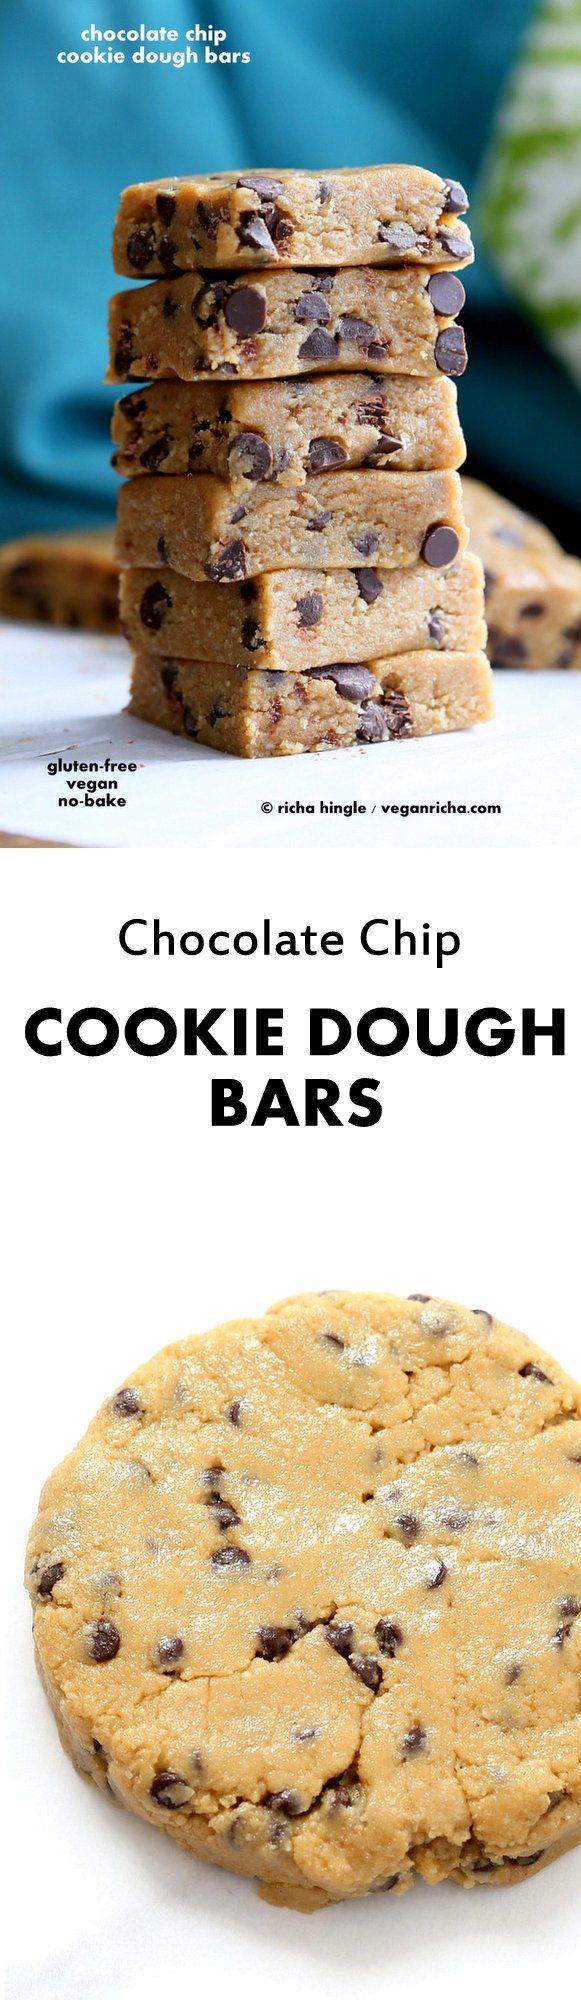 Easy Vegan Chocolate Chip Cookie Dough Bars. Gluten-free   VeganRicha.com  These babies are no-bake. If you love raw cookie dough, these should be pretty incredible.